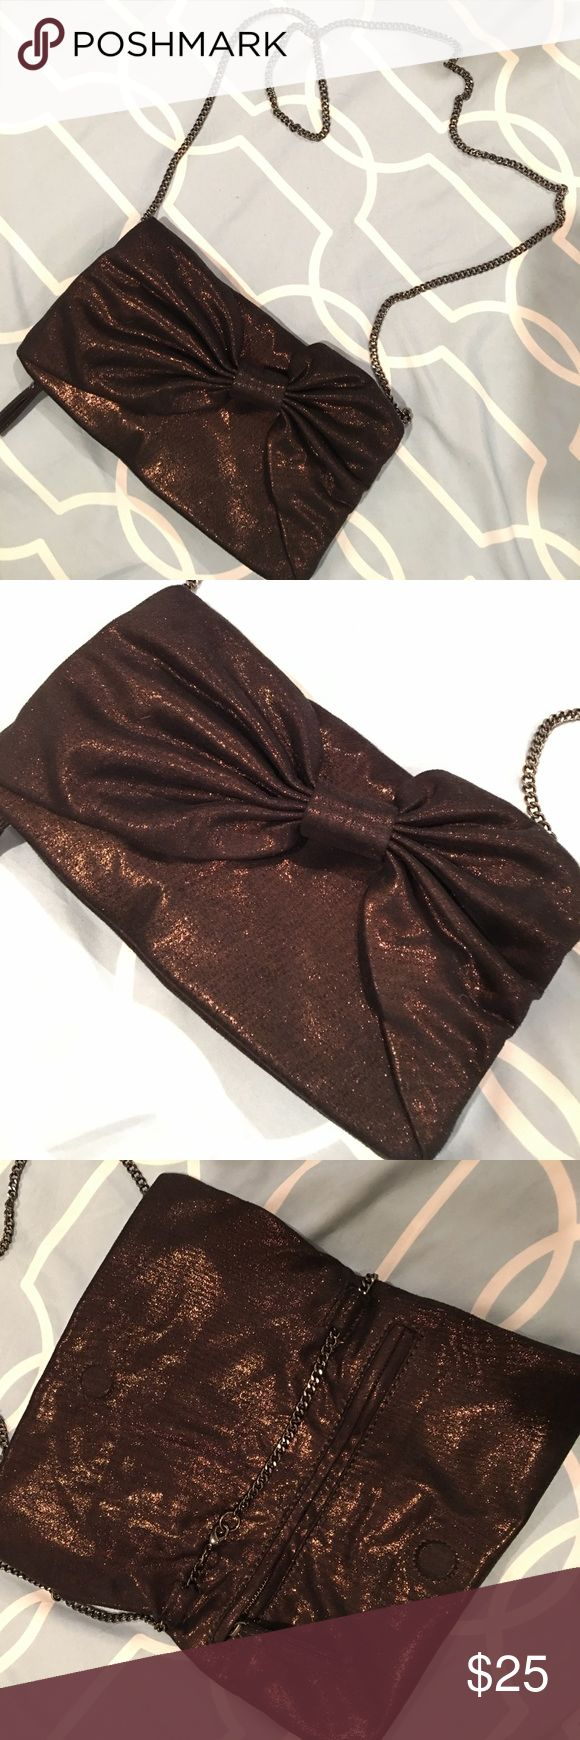 Gap Brown Shiny Bow Purse Soft, relaxed material, with a chain that can be worn lengthwise or cross body. It's a fold over design with a magnetic closure. Once unzipped, opens into a main compartment. Strap can also be detached and this can be worn as a clutch. GAP Bags